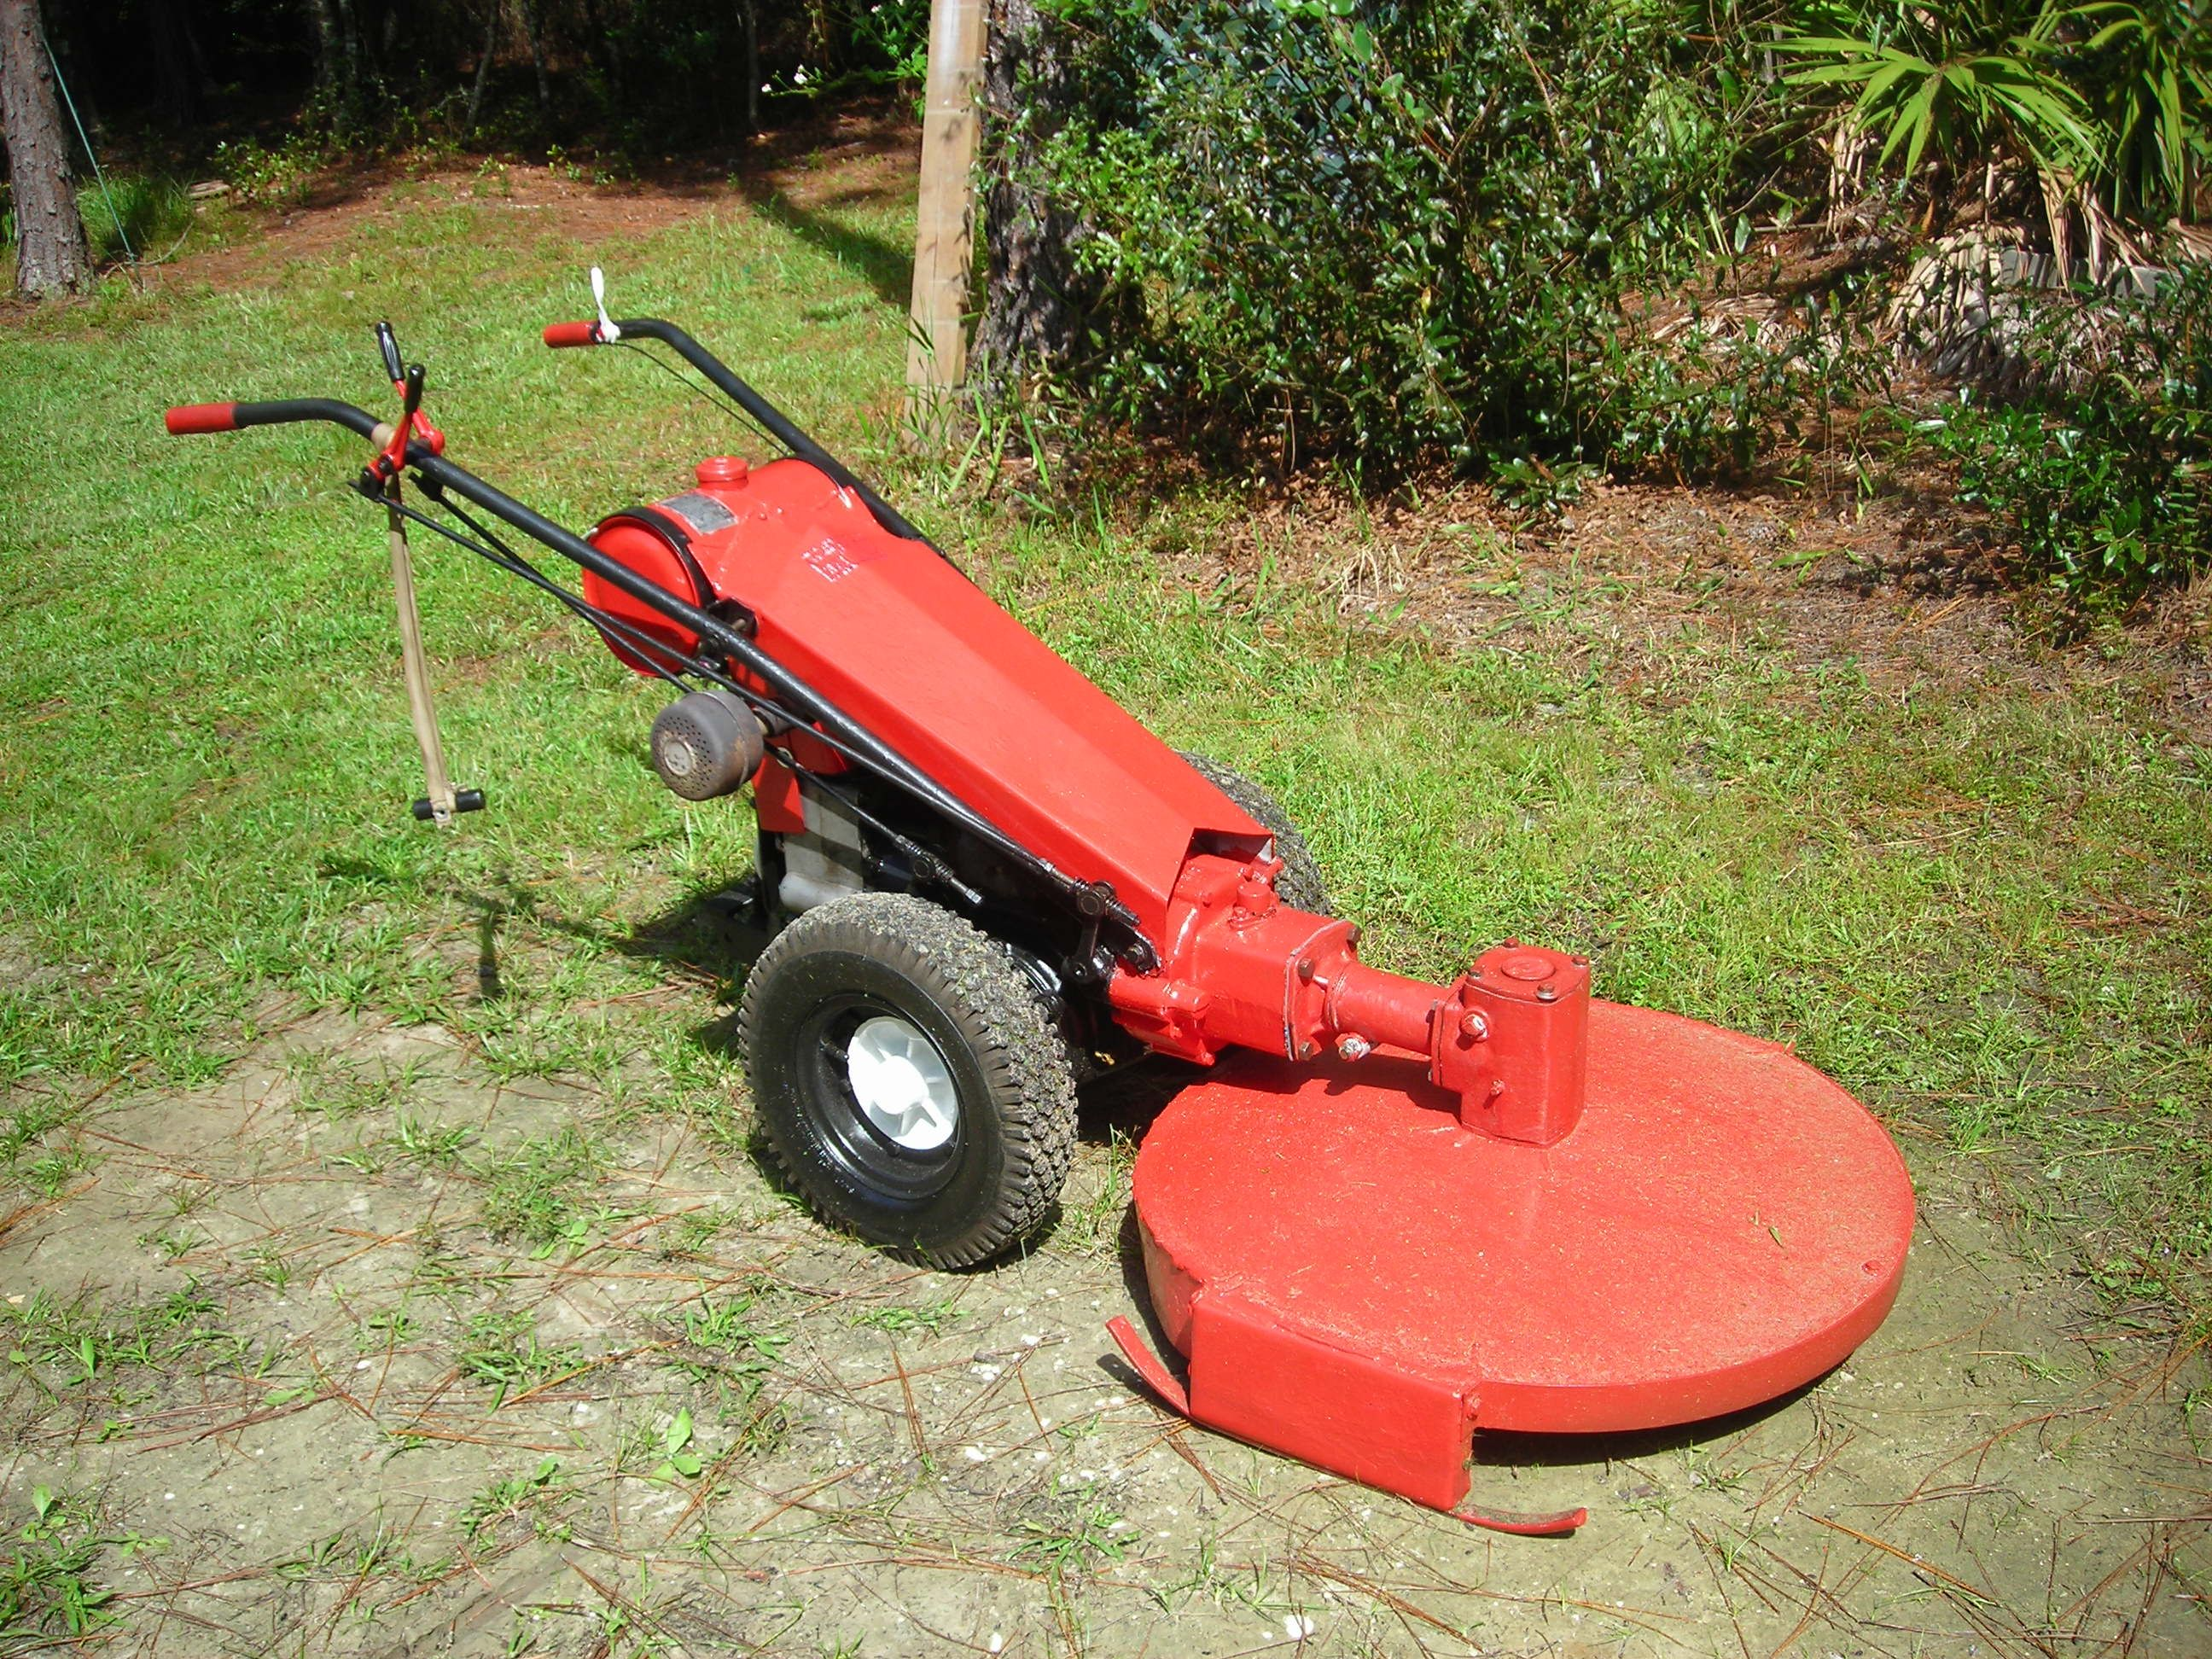 1956 Gravely Lawn Tractor After Restoration Runs Great Starts One Pull Of The Belt Family Owned Since New Have Origin Lawn Tractor Tractors Walk Behind Tractor